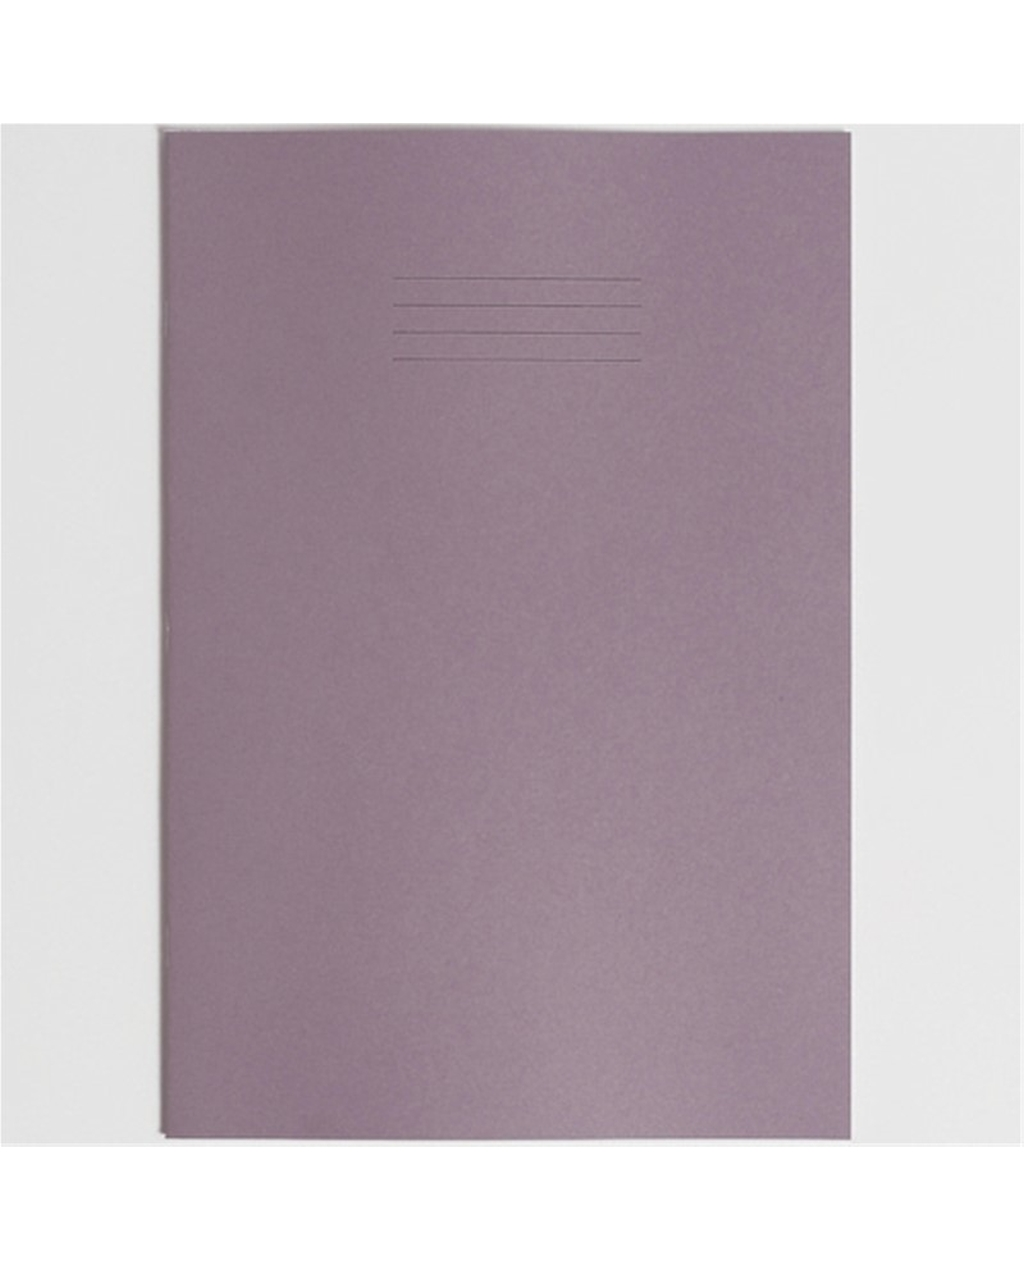 Exercise Book A4+ size (330 x 250mm) Purple Cover Plain - No Ruling 40 Pages